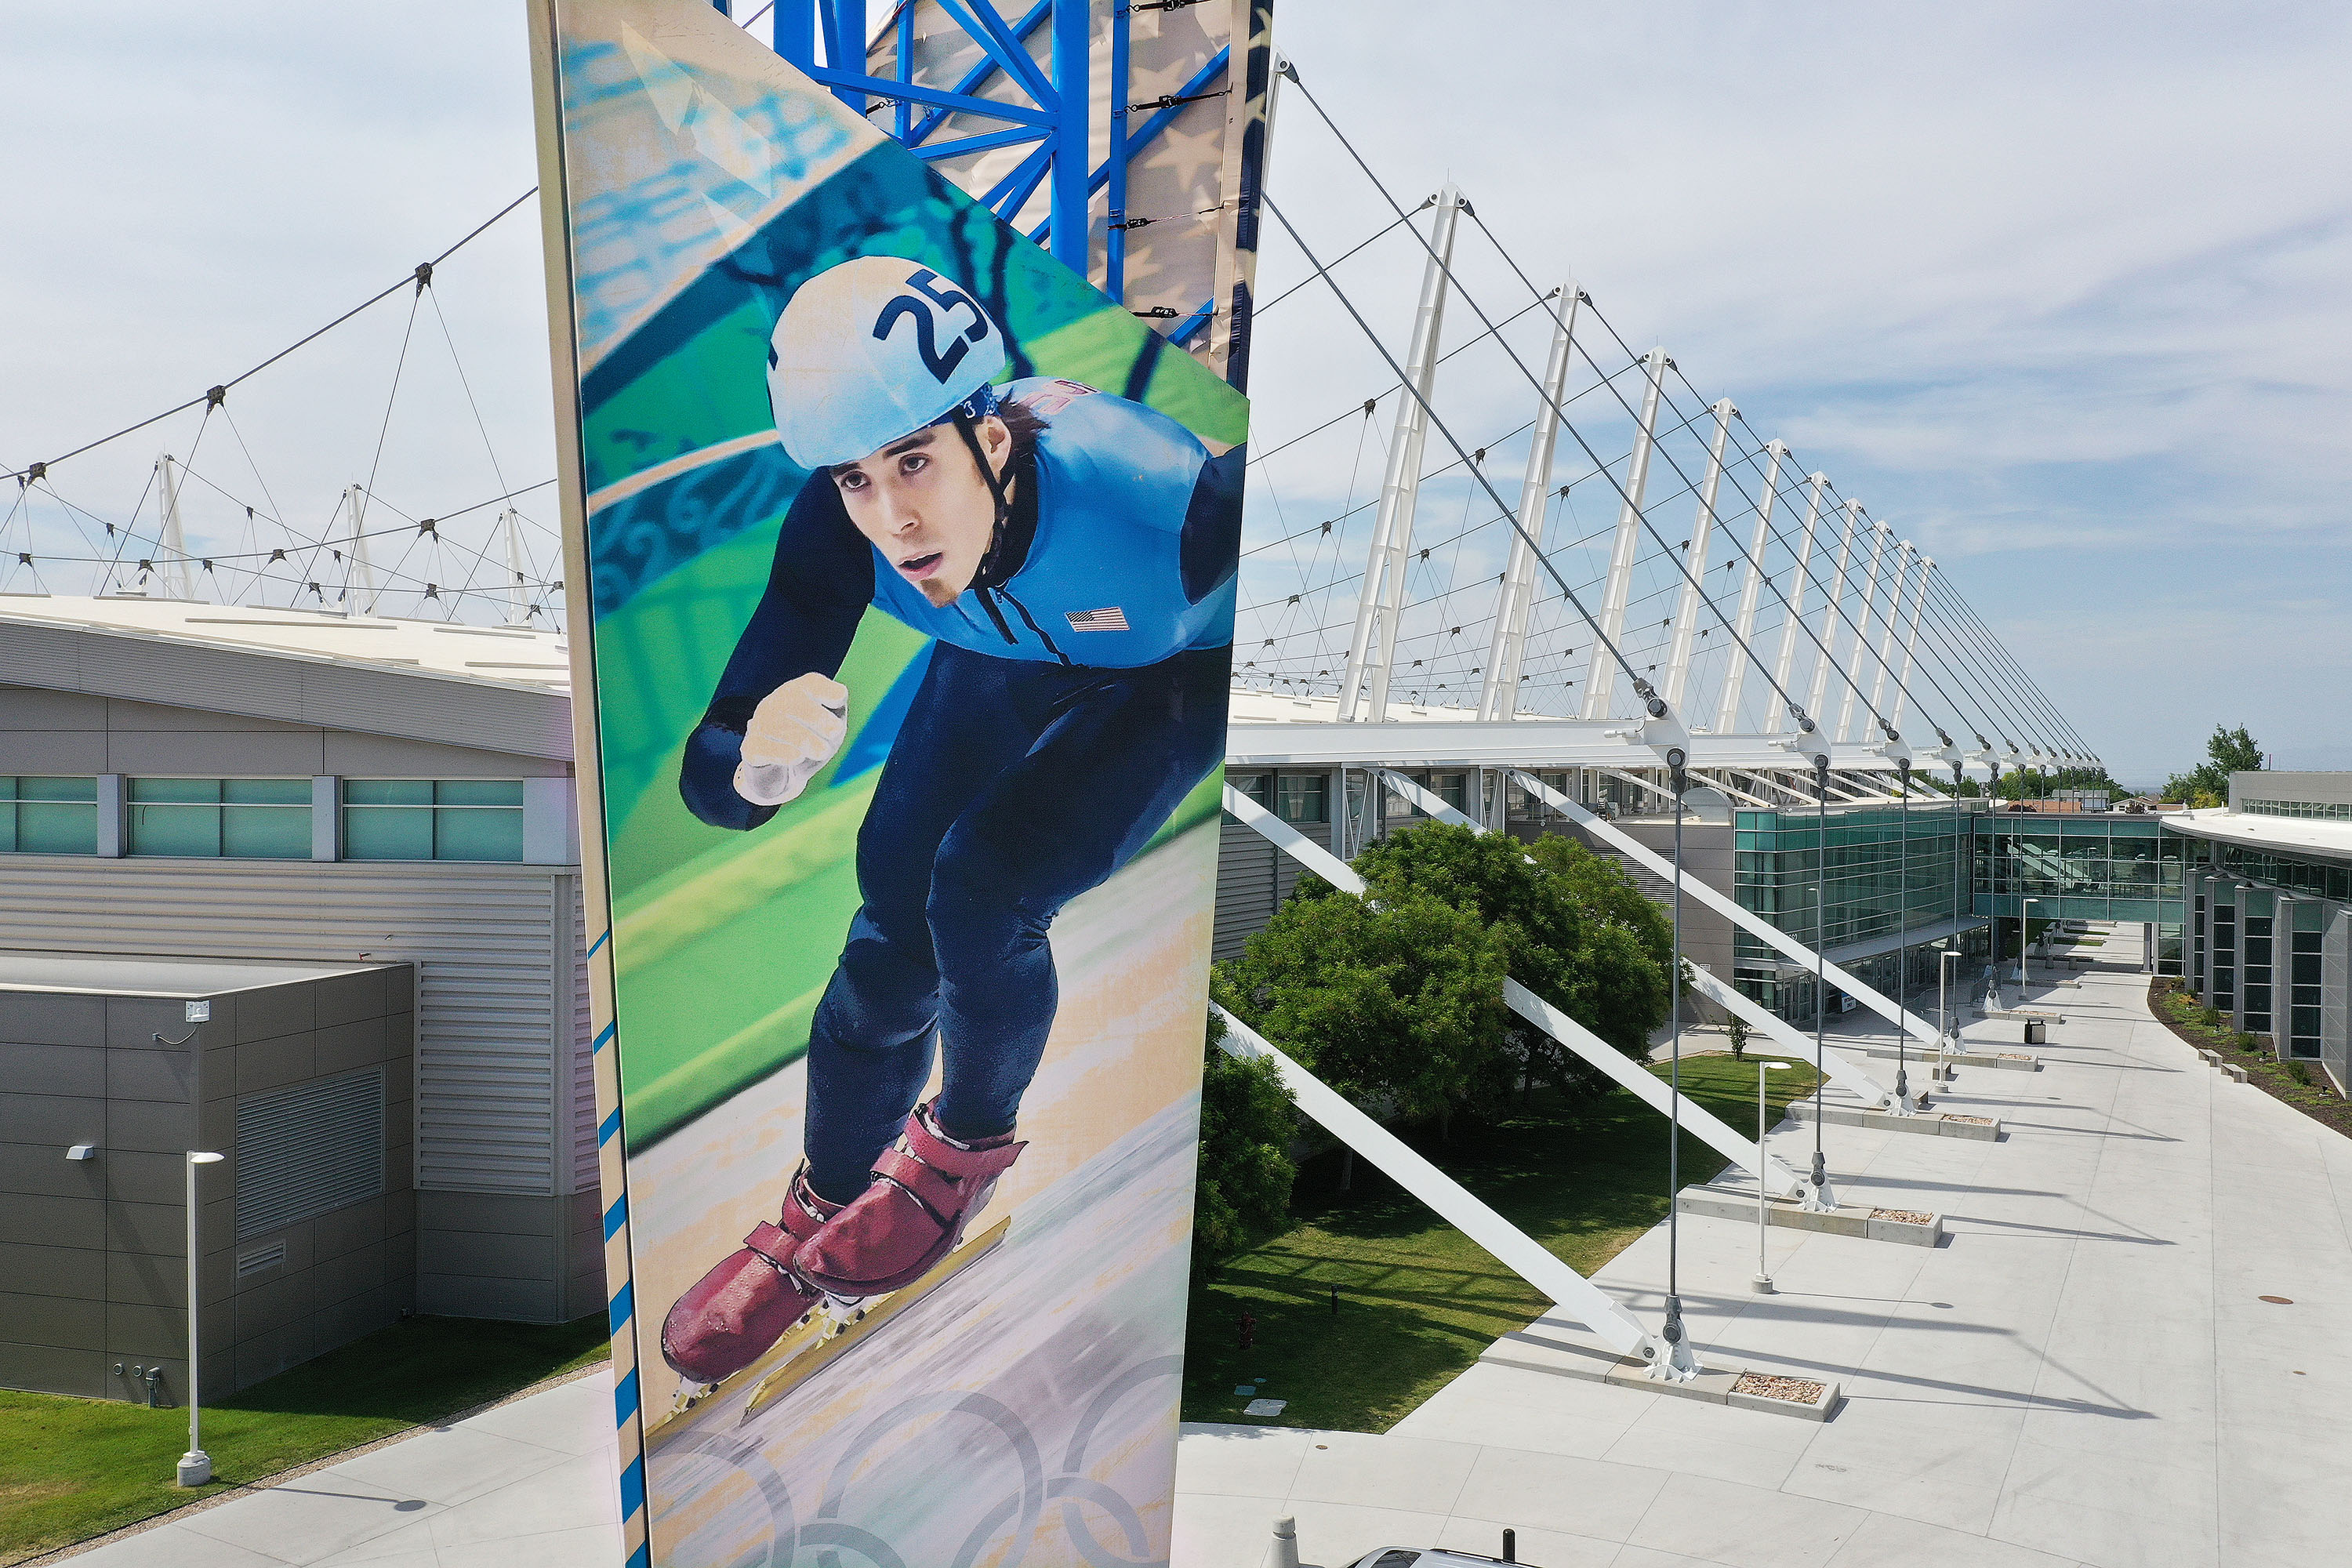 Utahns may know soon whether Salt Lake City will be bidding for the 2030 or 2034 Winter Olympic Games.